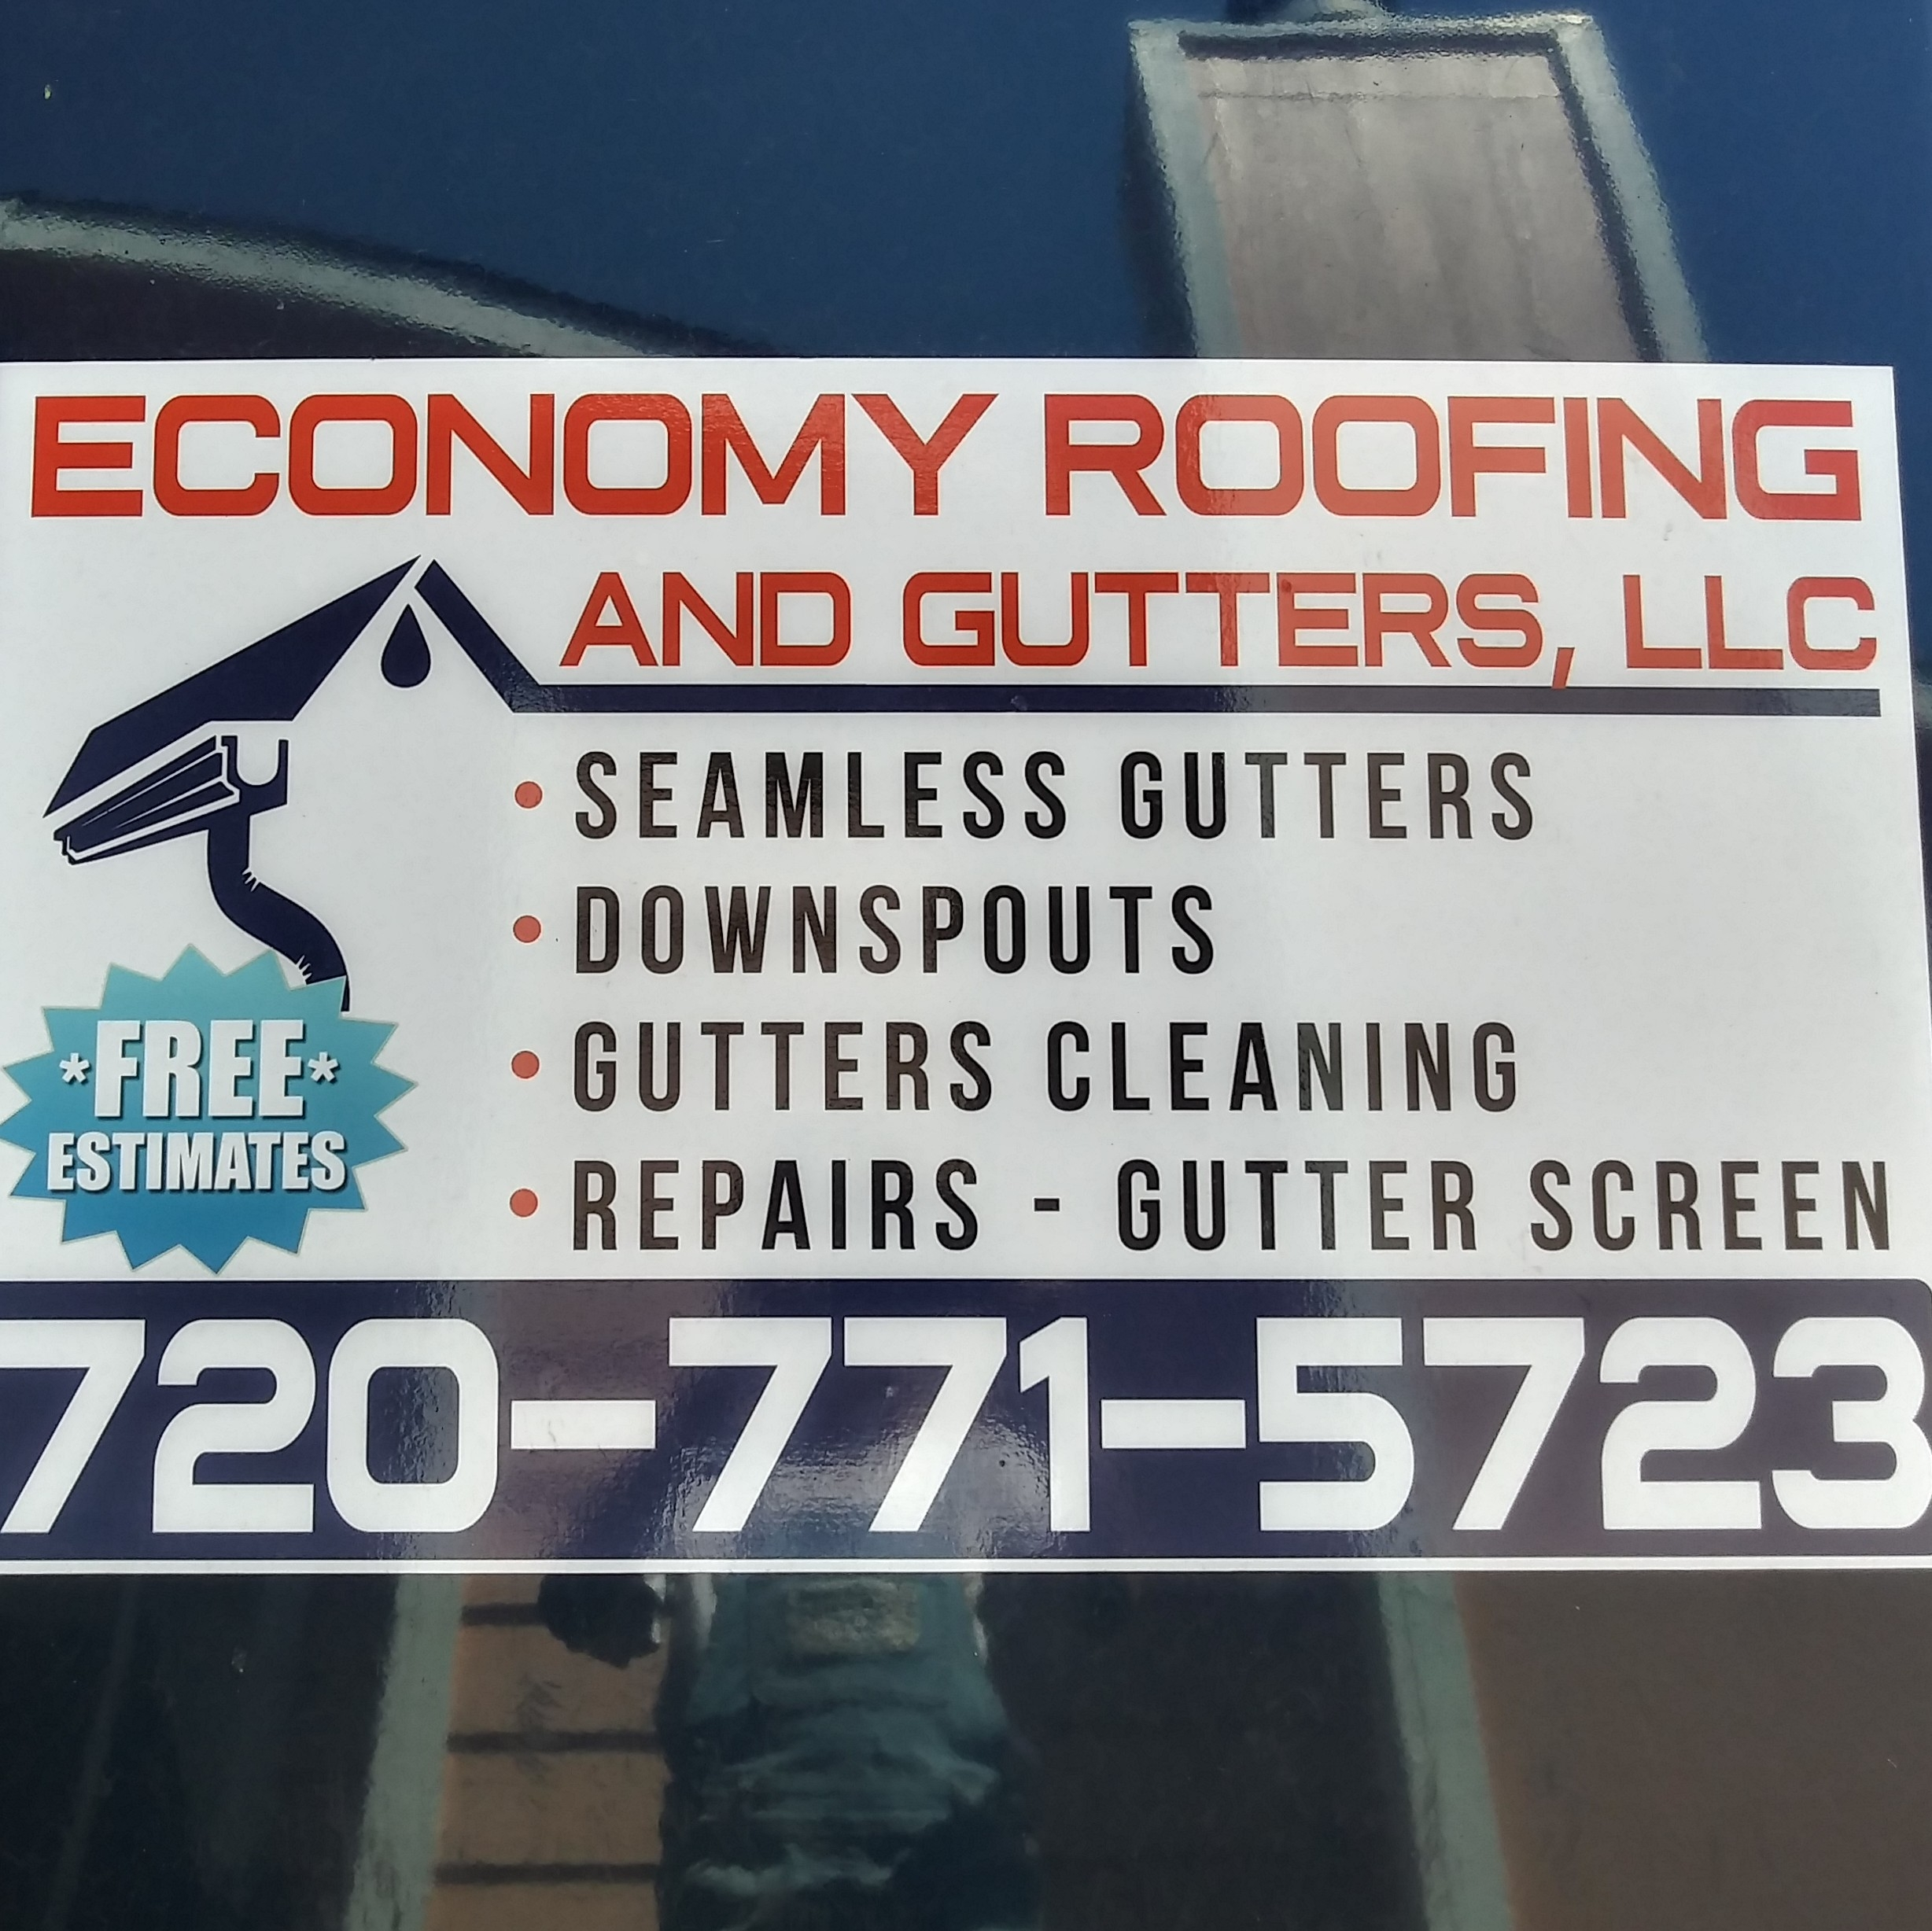 Economy Roofing & Gutters LLC